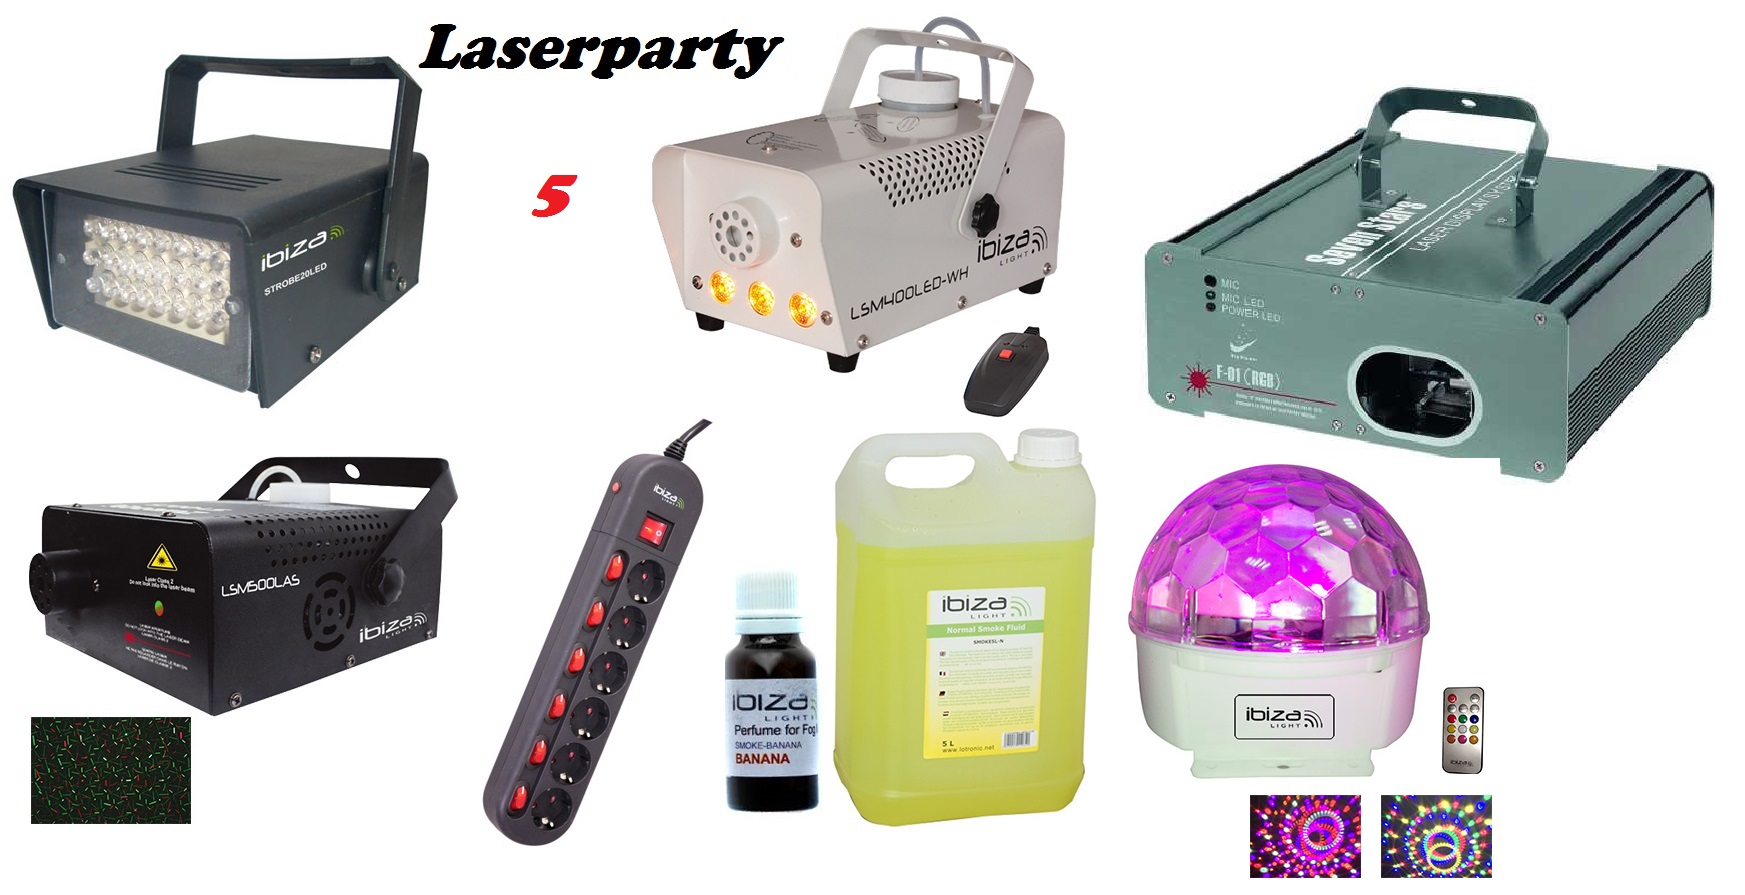 set LASERPARTY 5 PLUS